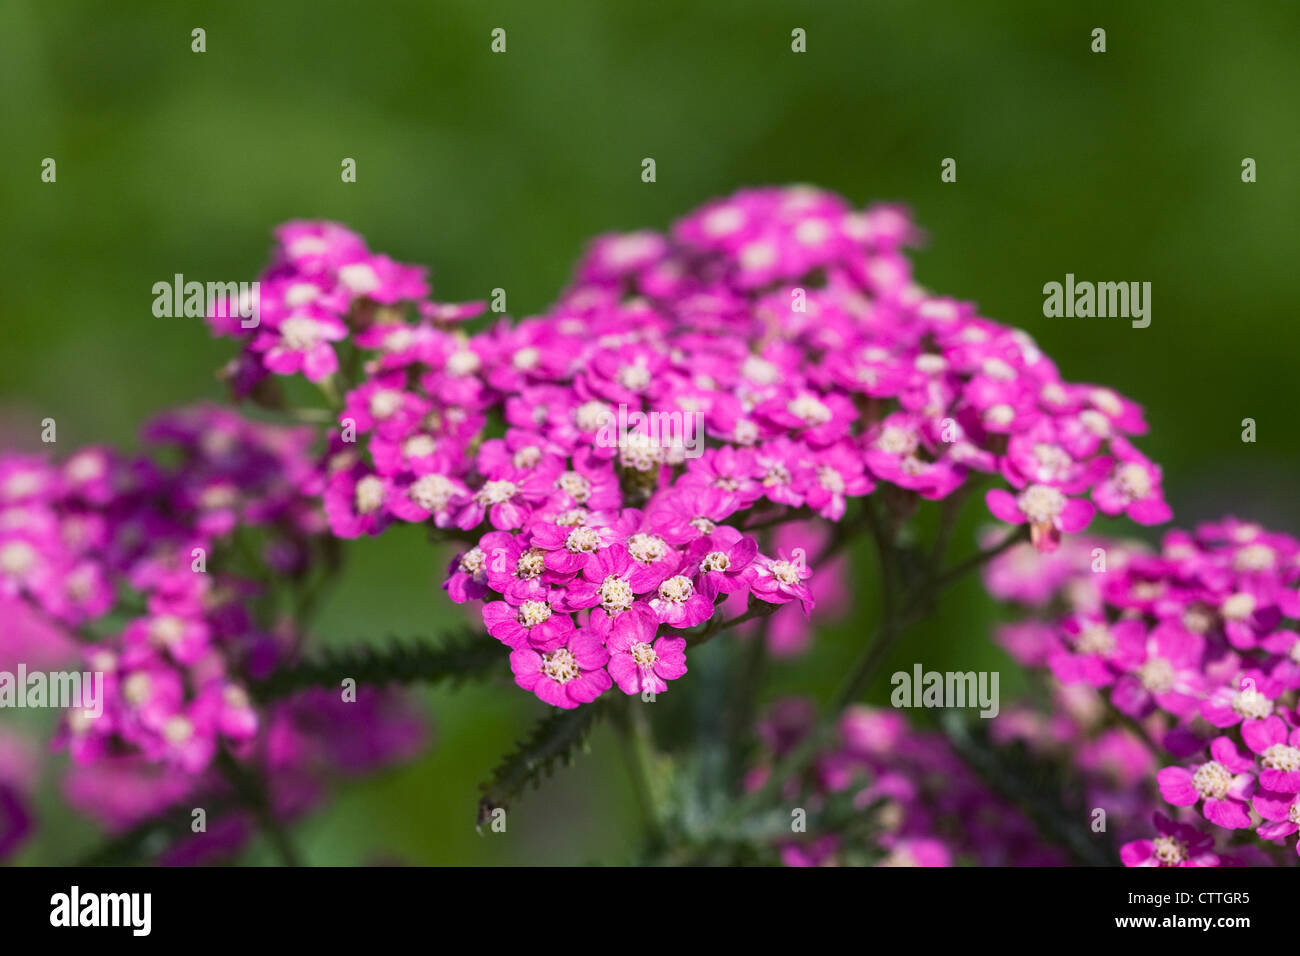 Achillea millefolium. Yarrow growing in the garden. - Stock Image